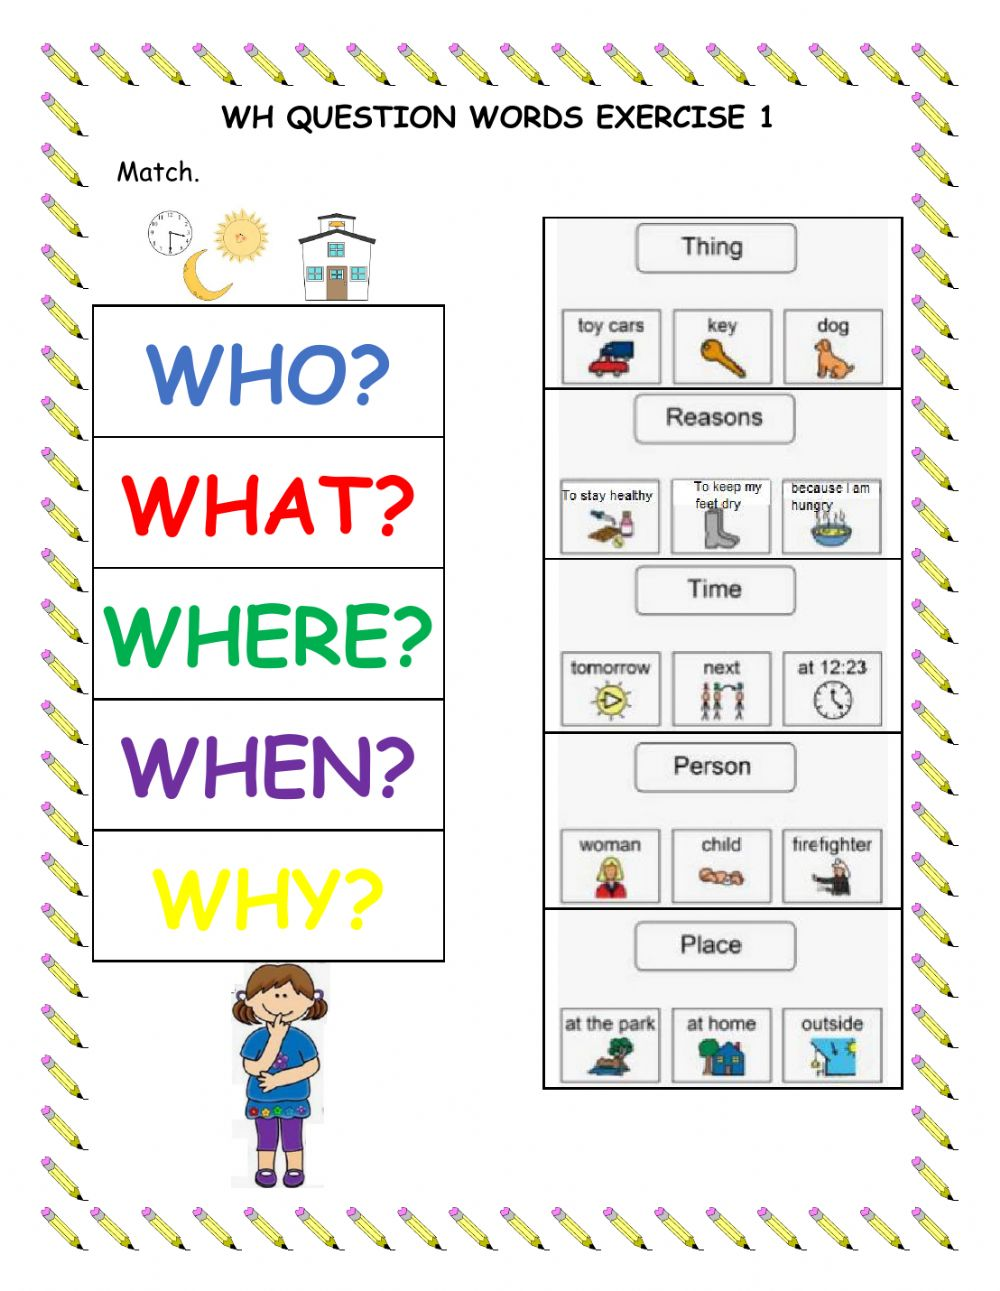 medium resolution of Wh Question Words Exercise 1 worksheet